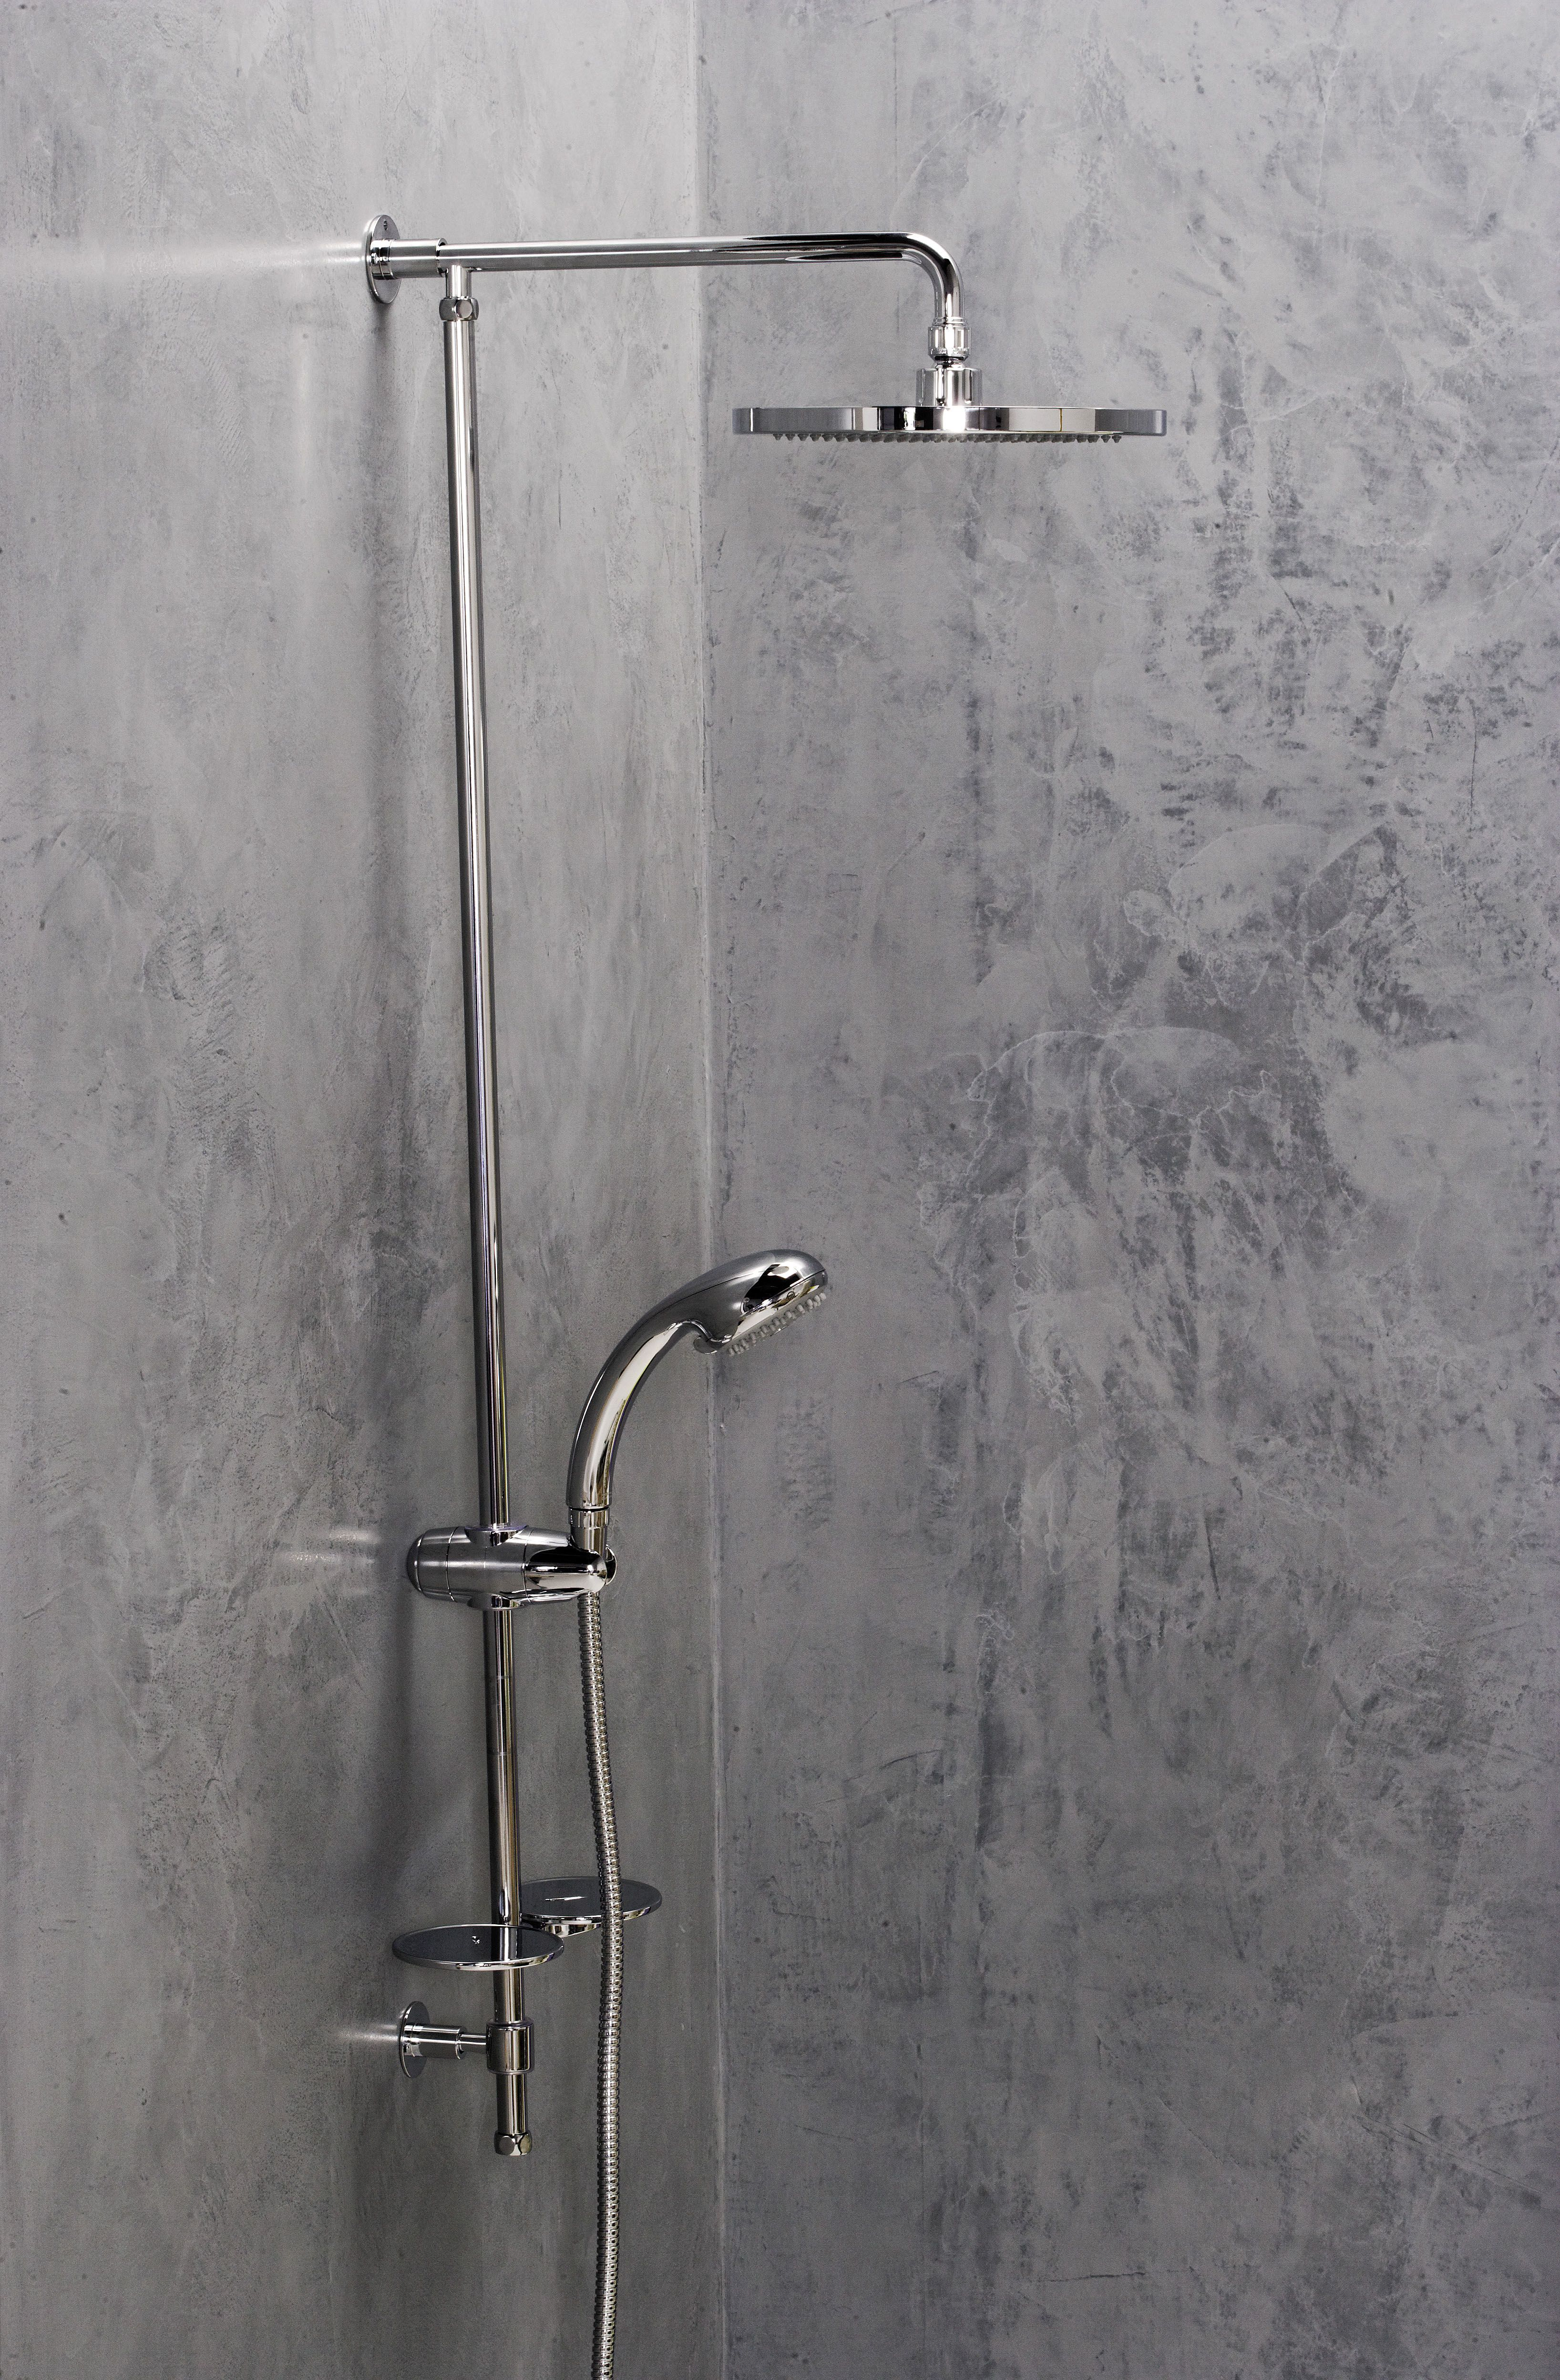 Amazing Cement Shower Stall   Yahoo Image Search Results